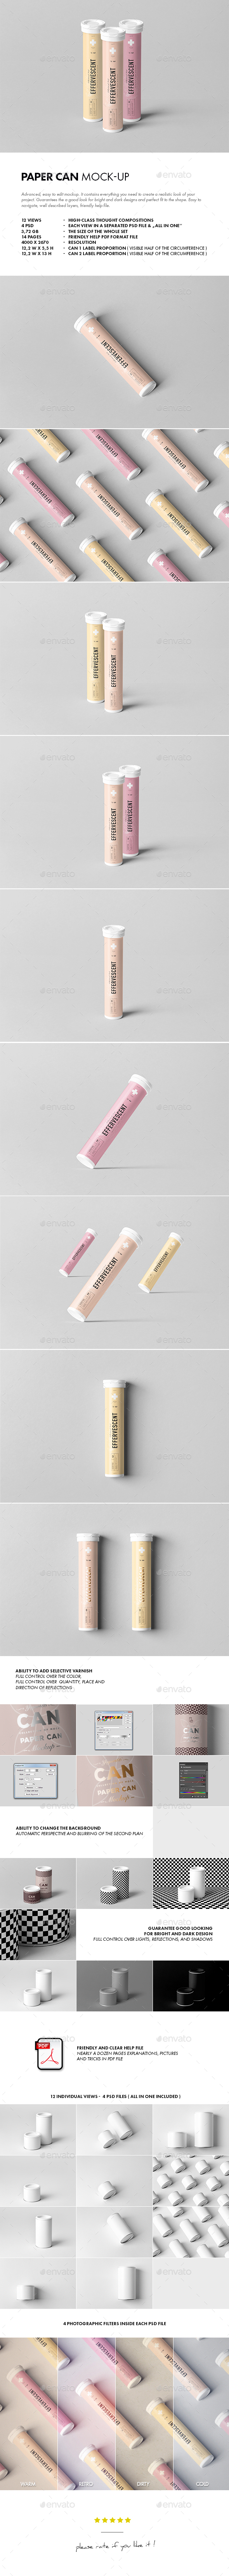 Effervescent Tablets Tube Mock-up - Food and Drink Packaging